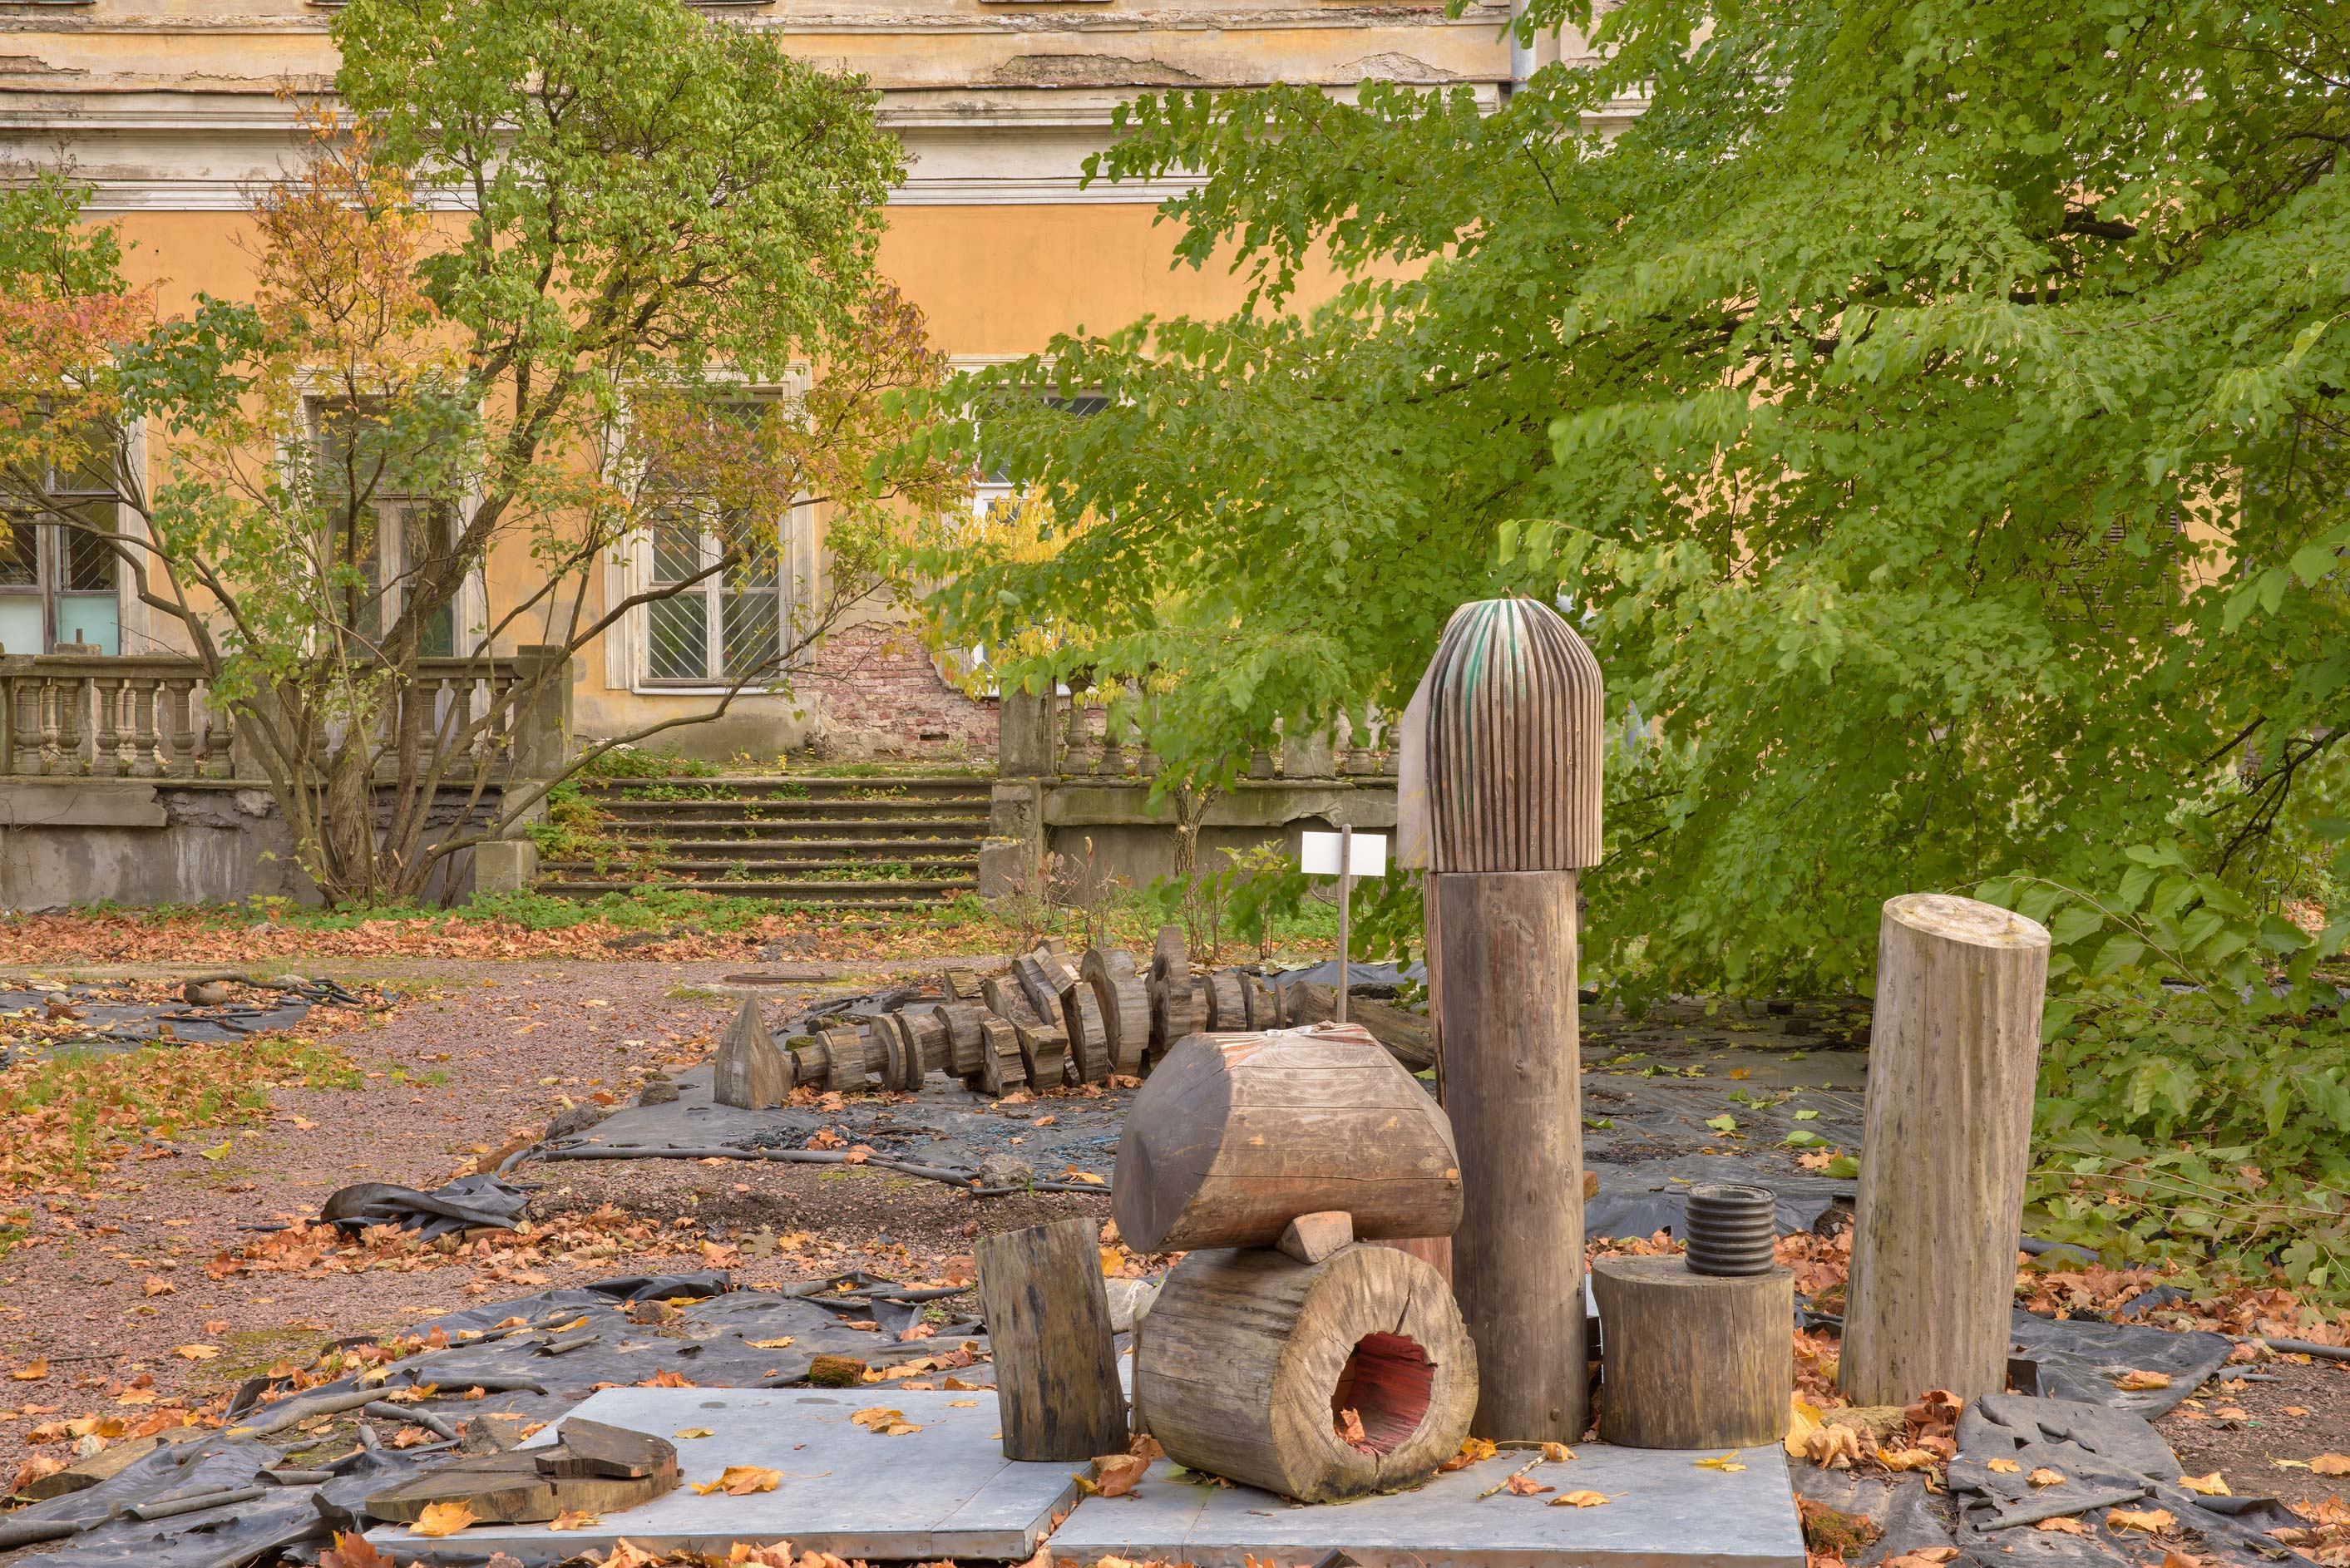 Wooden sculptures in Botanic Gardens of Komarov Botanical Institute. St.Petersburg, Russia